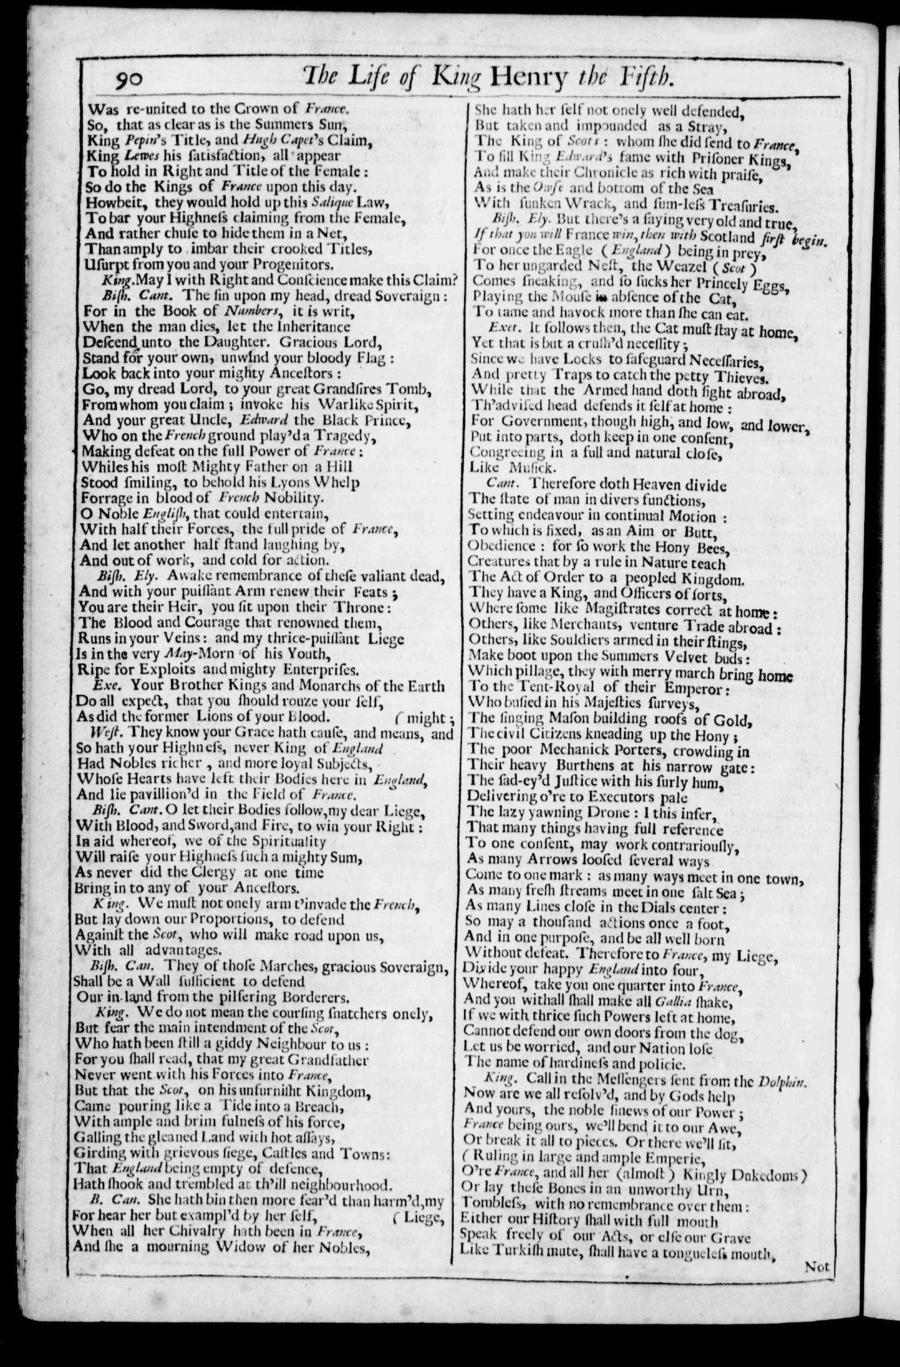 Image of Fourth Folio (New South Wales), page 371